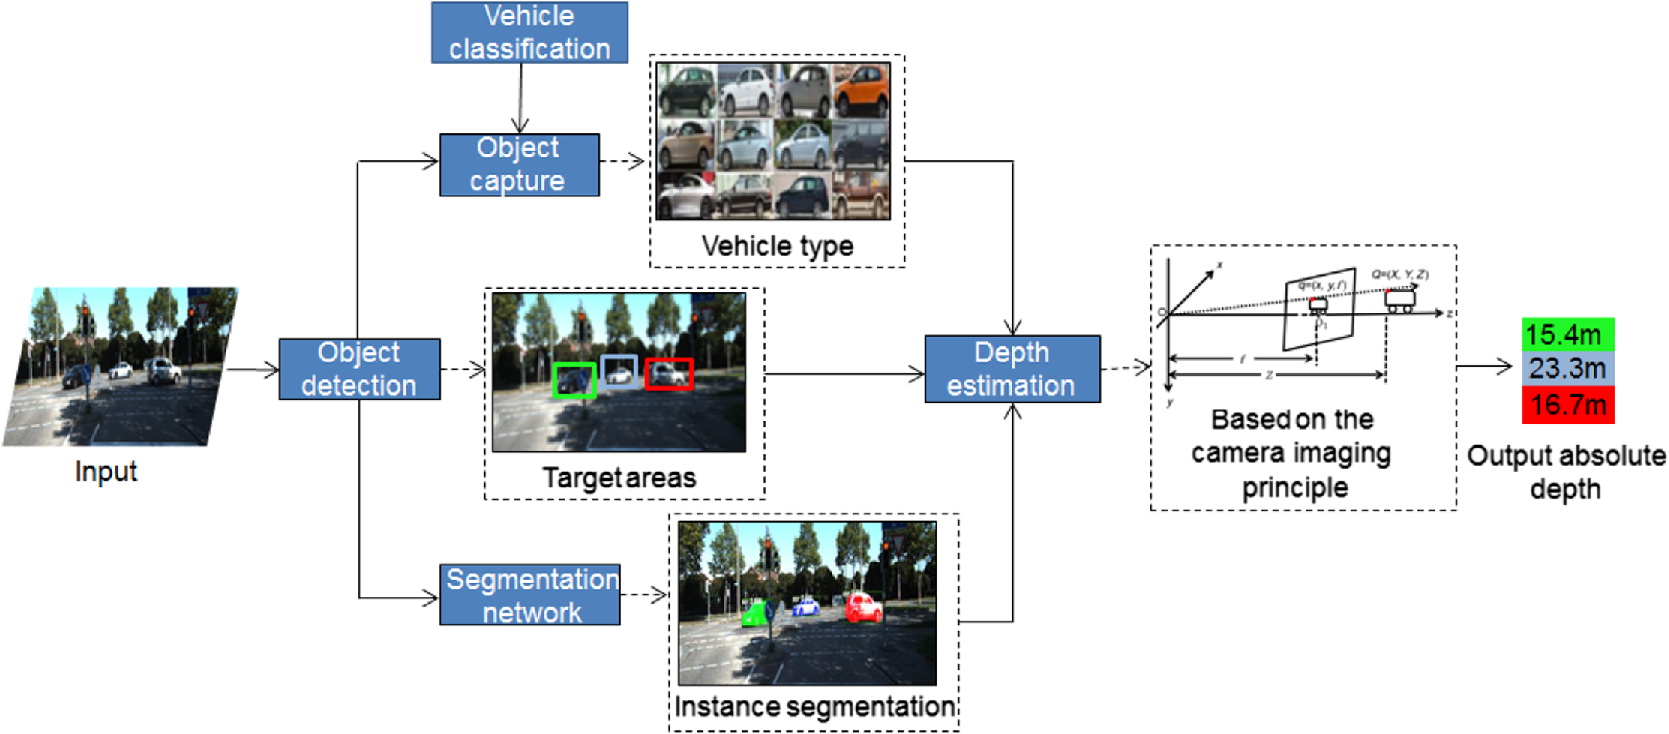 Measuring The Absolute Distance Of A Front Vehicle From An In Car Camera Diagram Labeled Related Keywords Fig 1